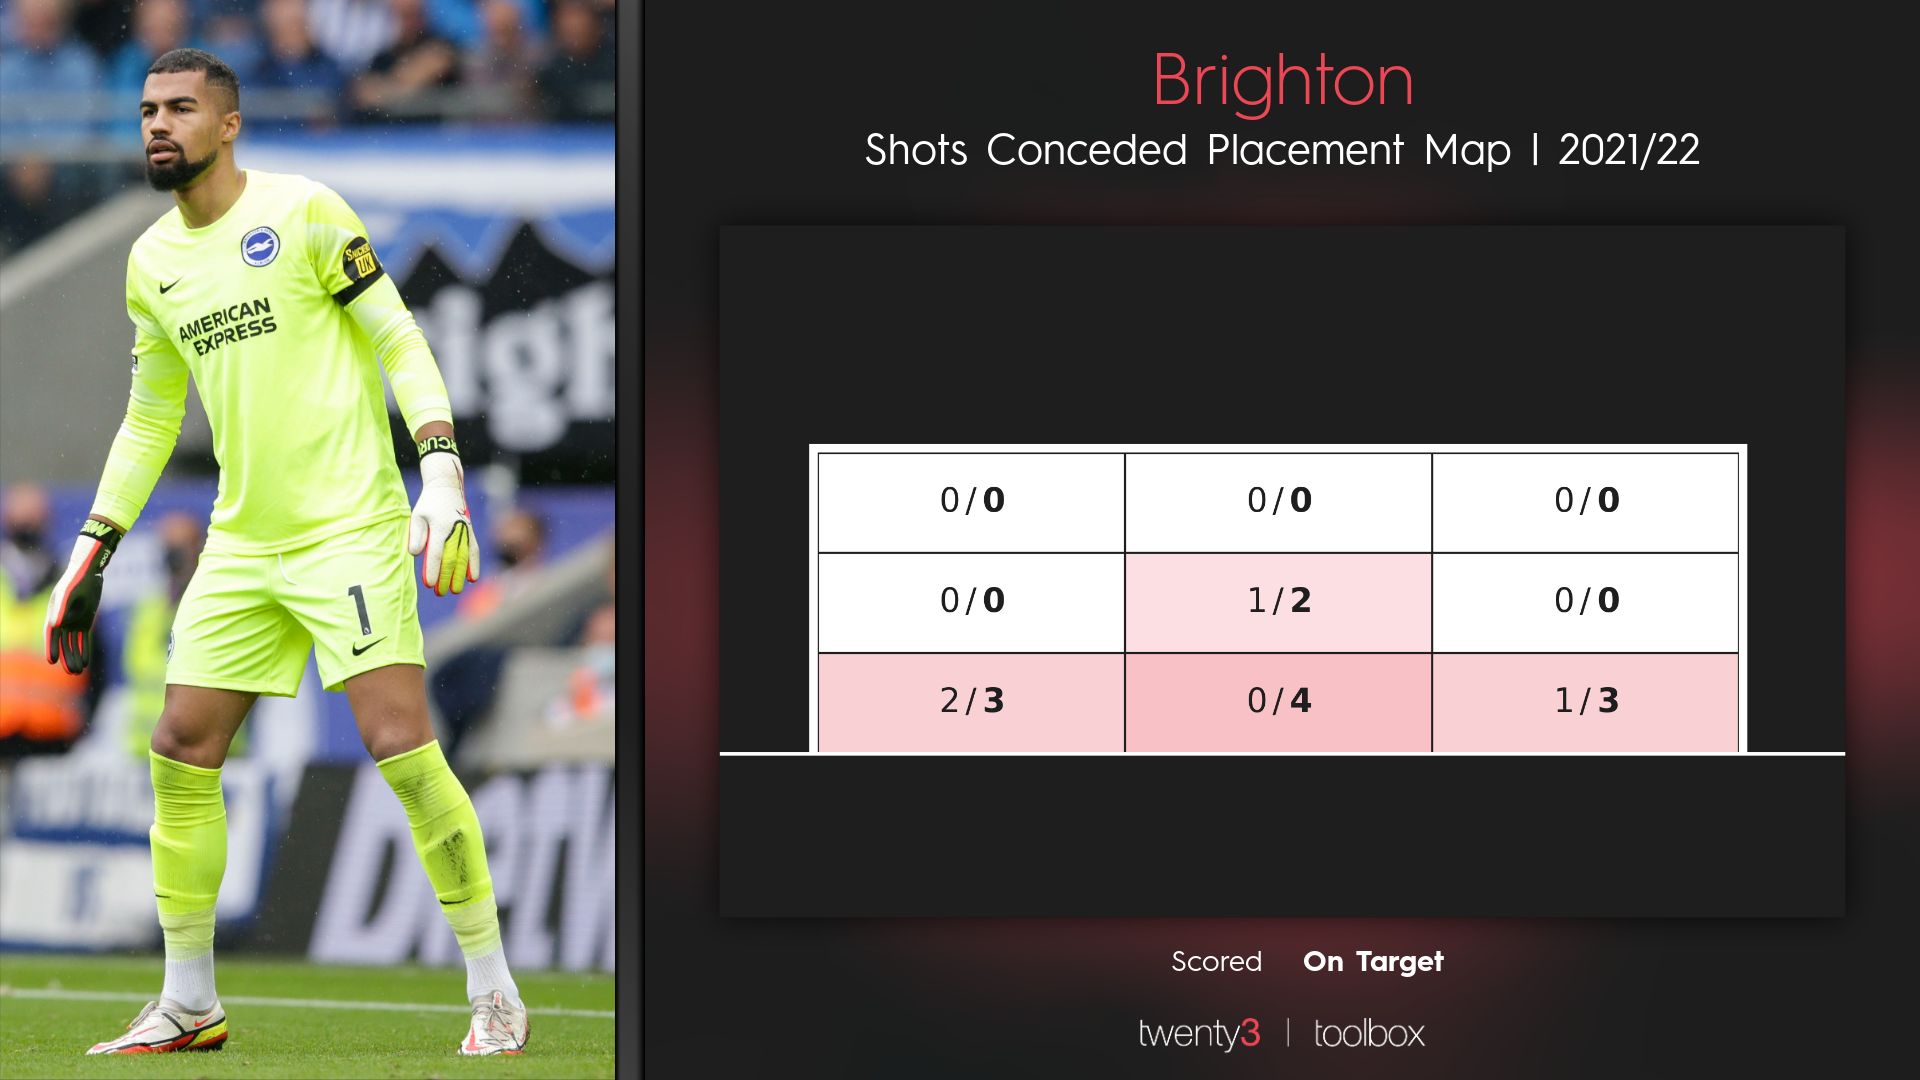 Brighton's shots conceded placement map for the 2021/22 Premier League campaign.